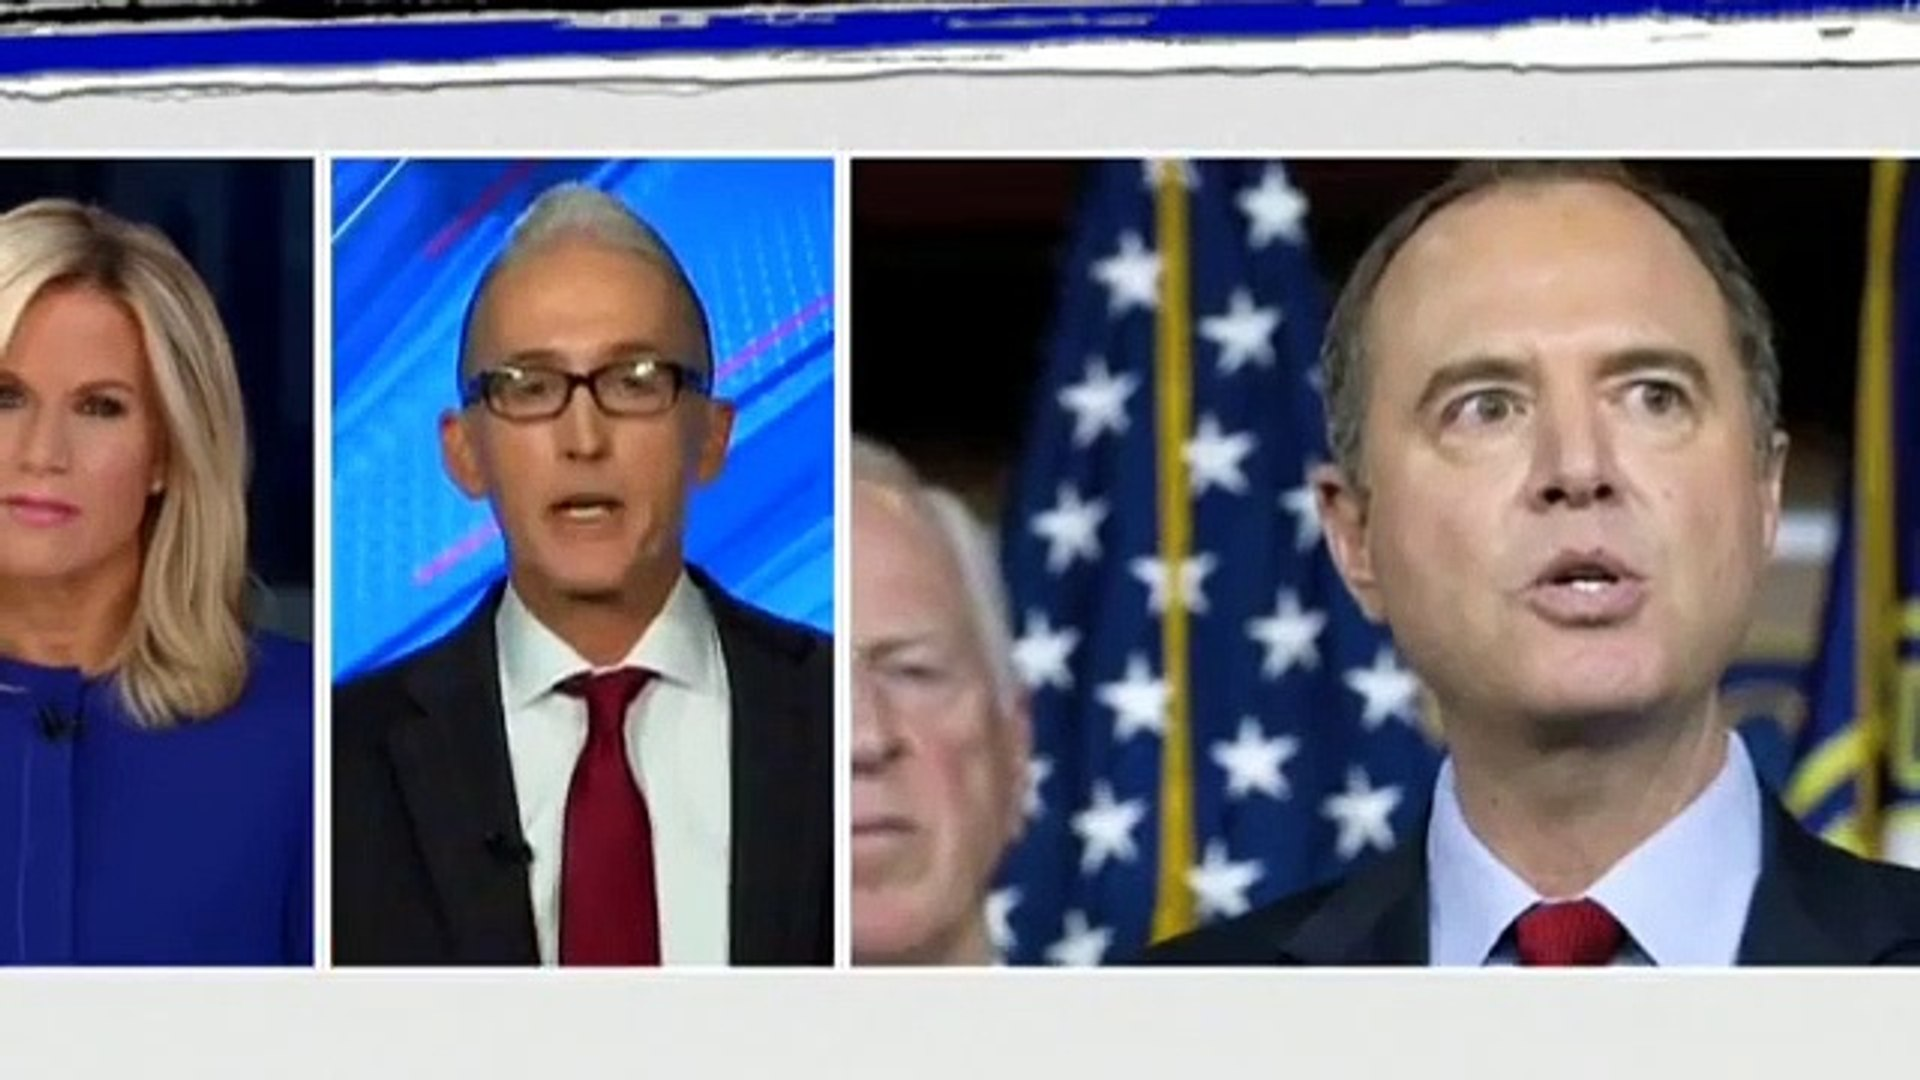 NEW! SEE WHAT TREY GOWDY JUST SAID TO NANCY PELOSI AND ADAM SCHIFF